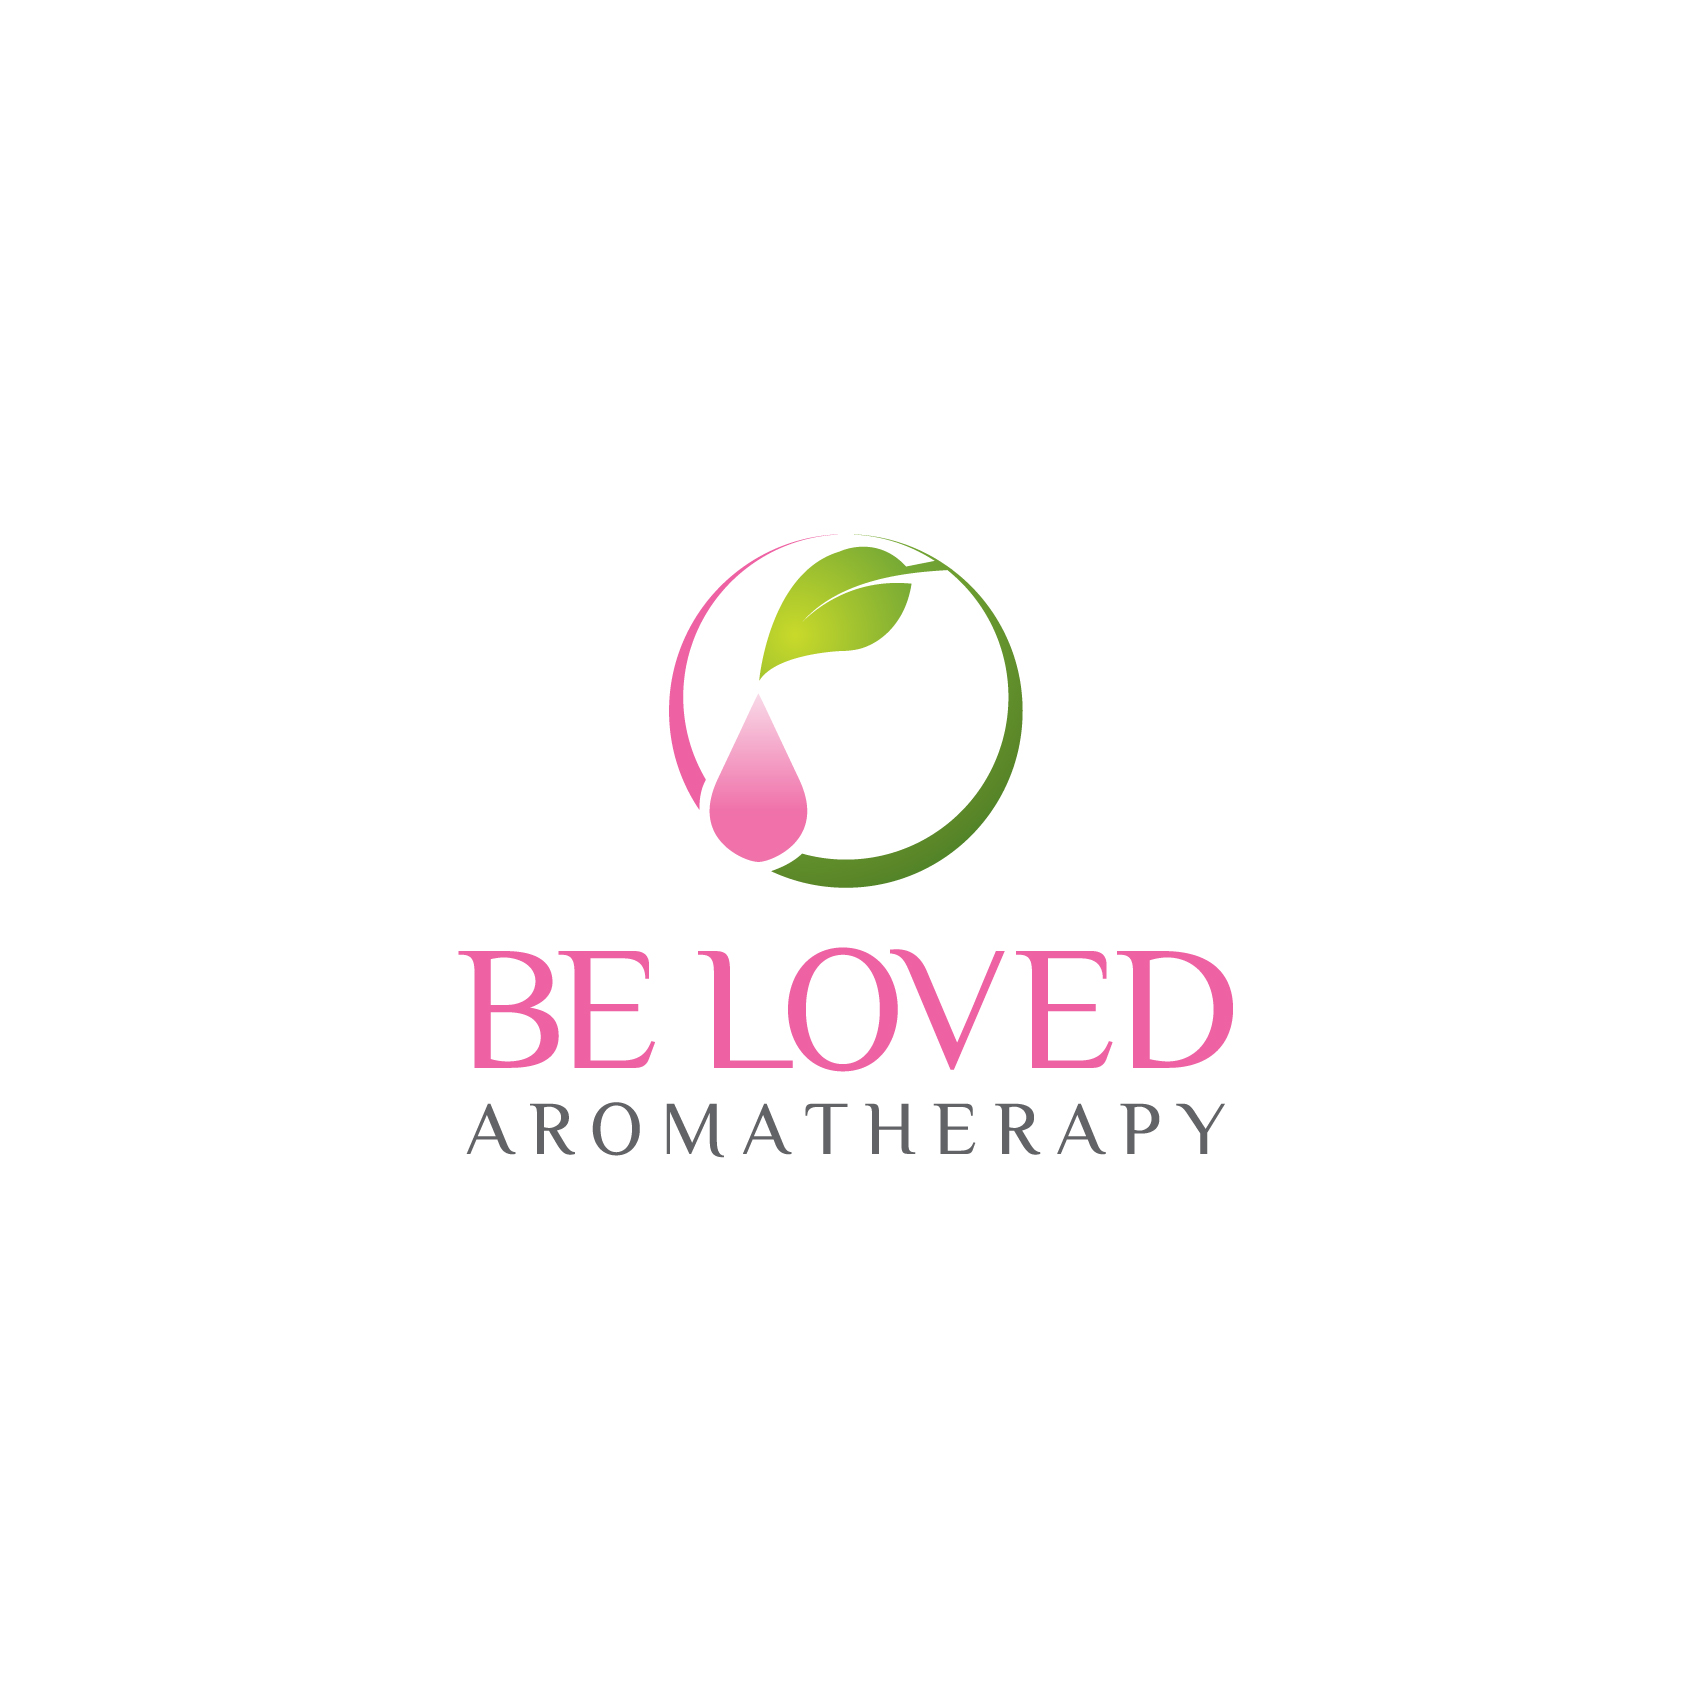 Logo Design by SIHEM - Entry No. 91 in the Logo Design Contest Fun Logo Design for Be Loved Aromatherapy.